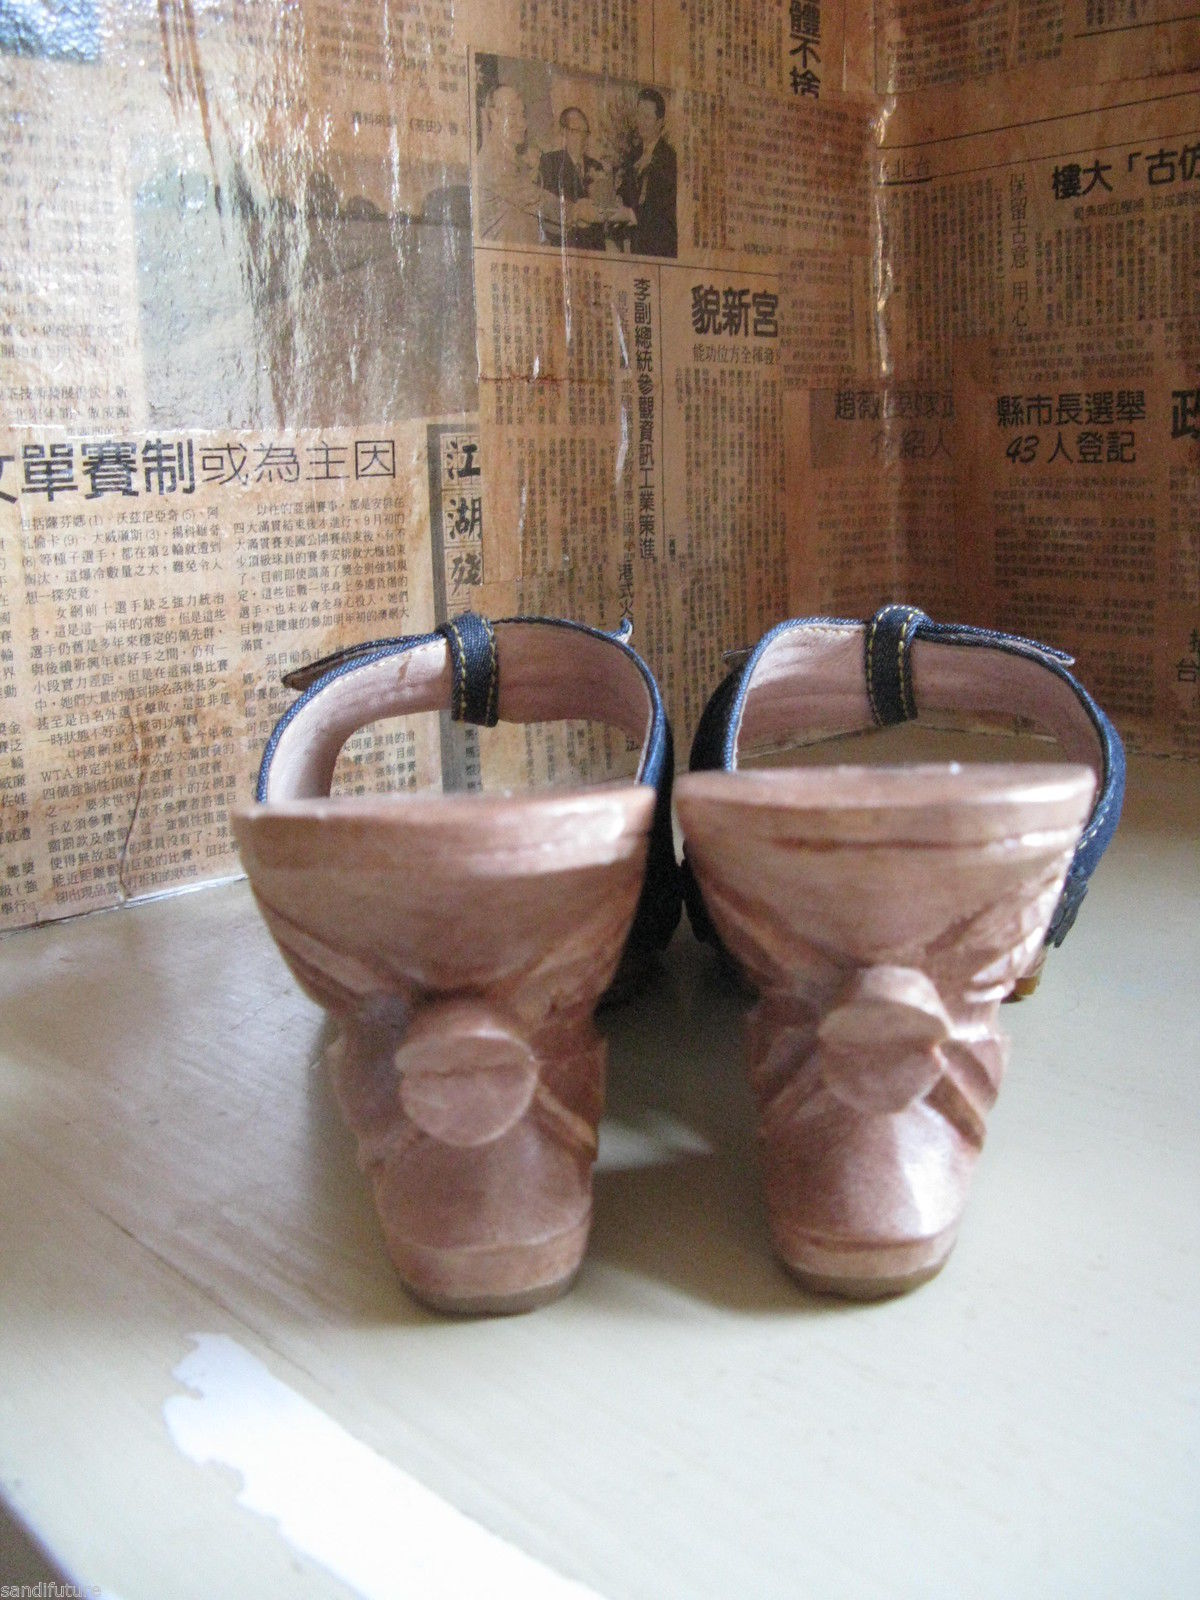 Vintage NWT Betsey Johnson Lucky Lou Tiki carved wooden shoes VLV 7 UK5.5 37